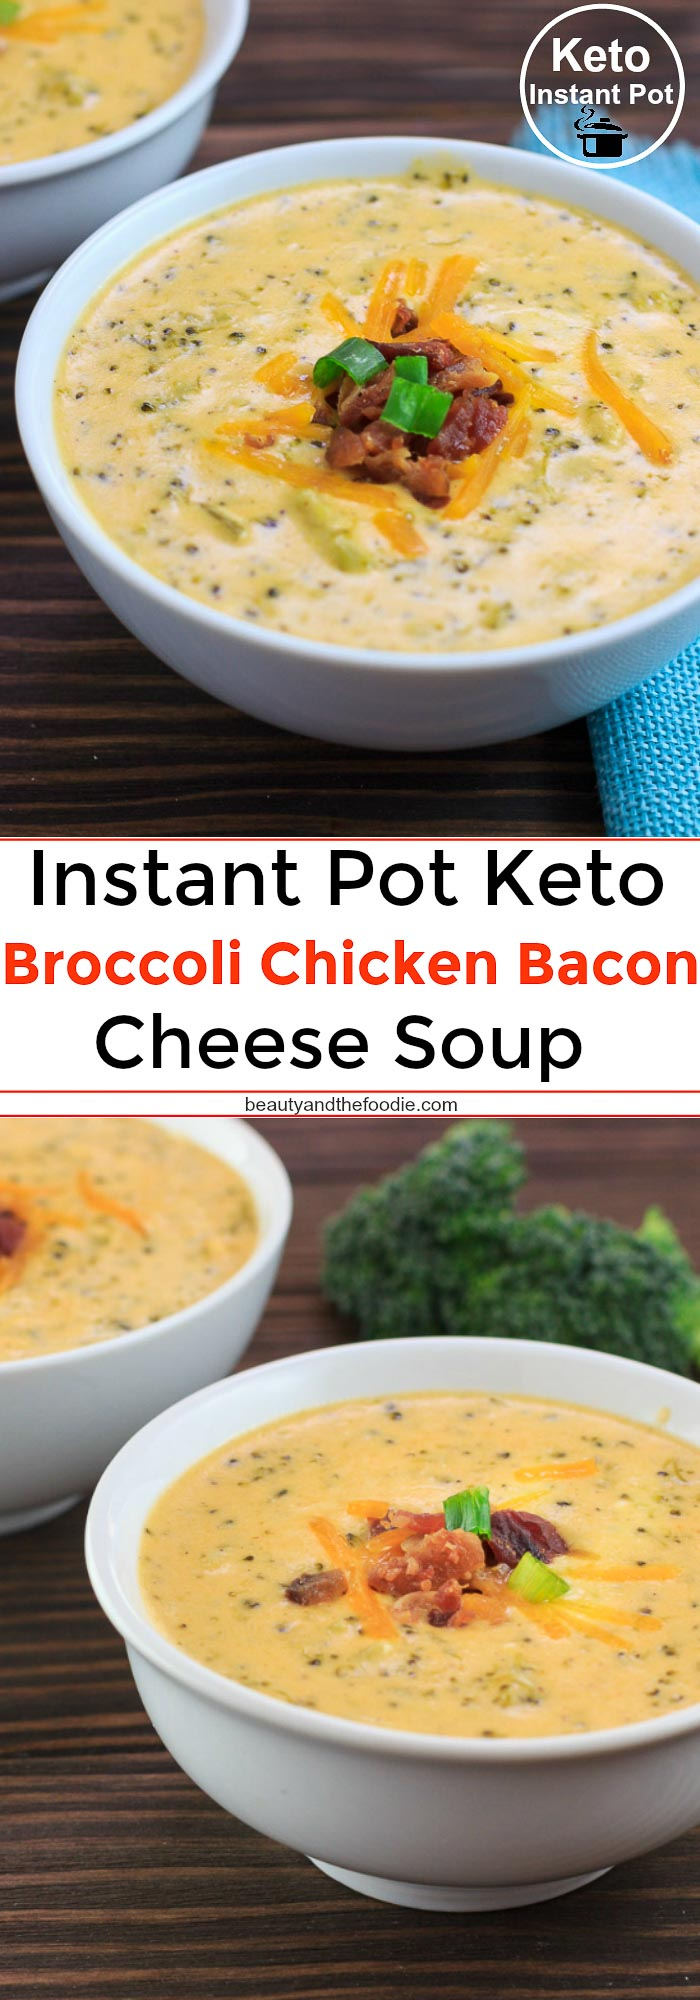 Instant Pot Keto Broccoli Chicken Bacon Cheese Soup - Low Carb & Gluten Free